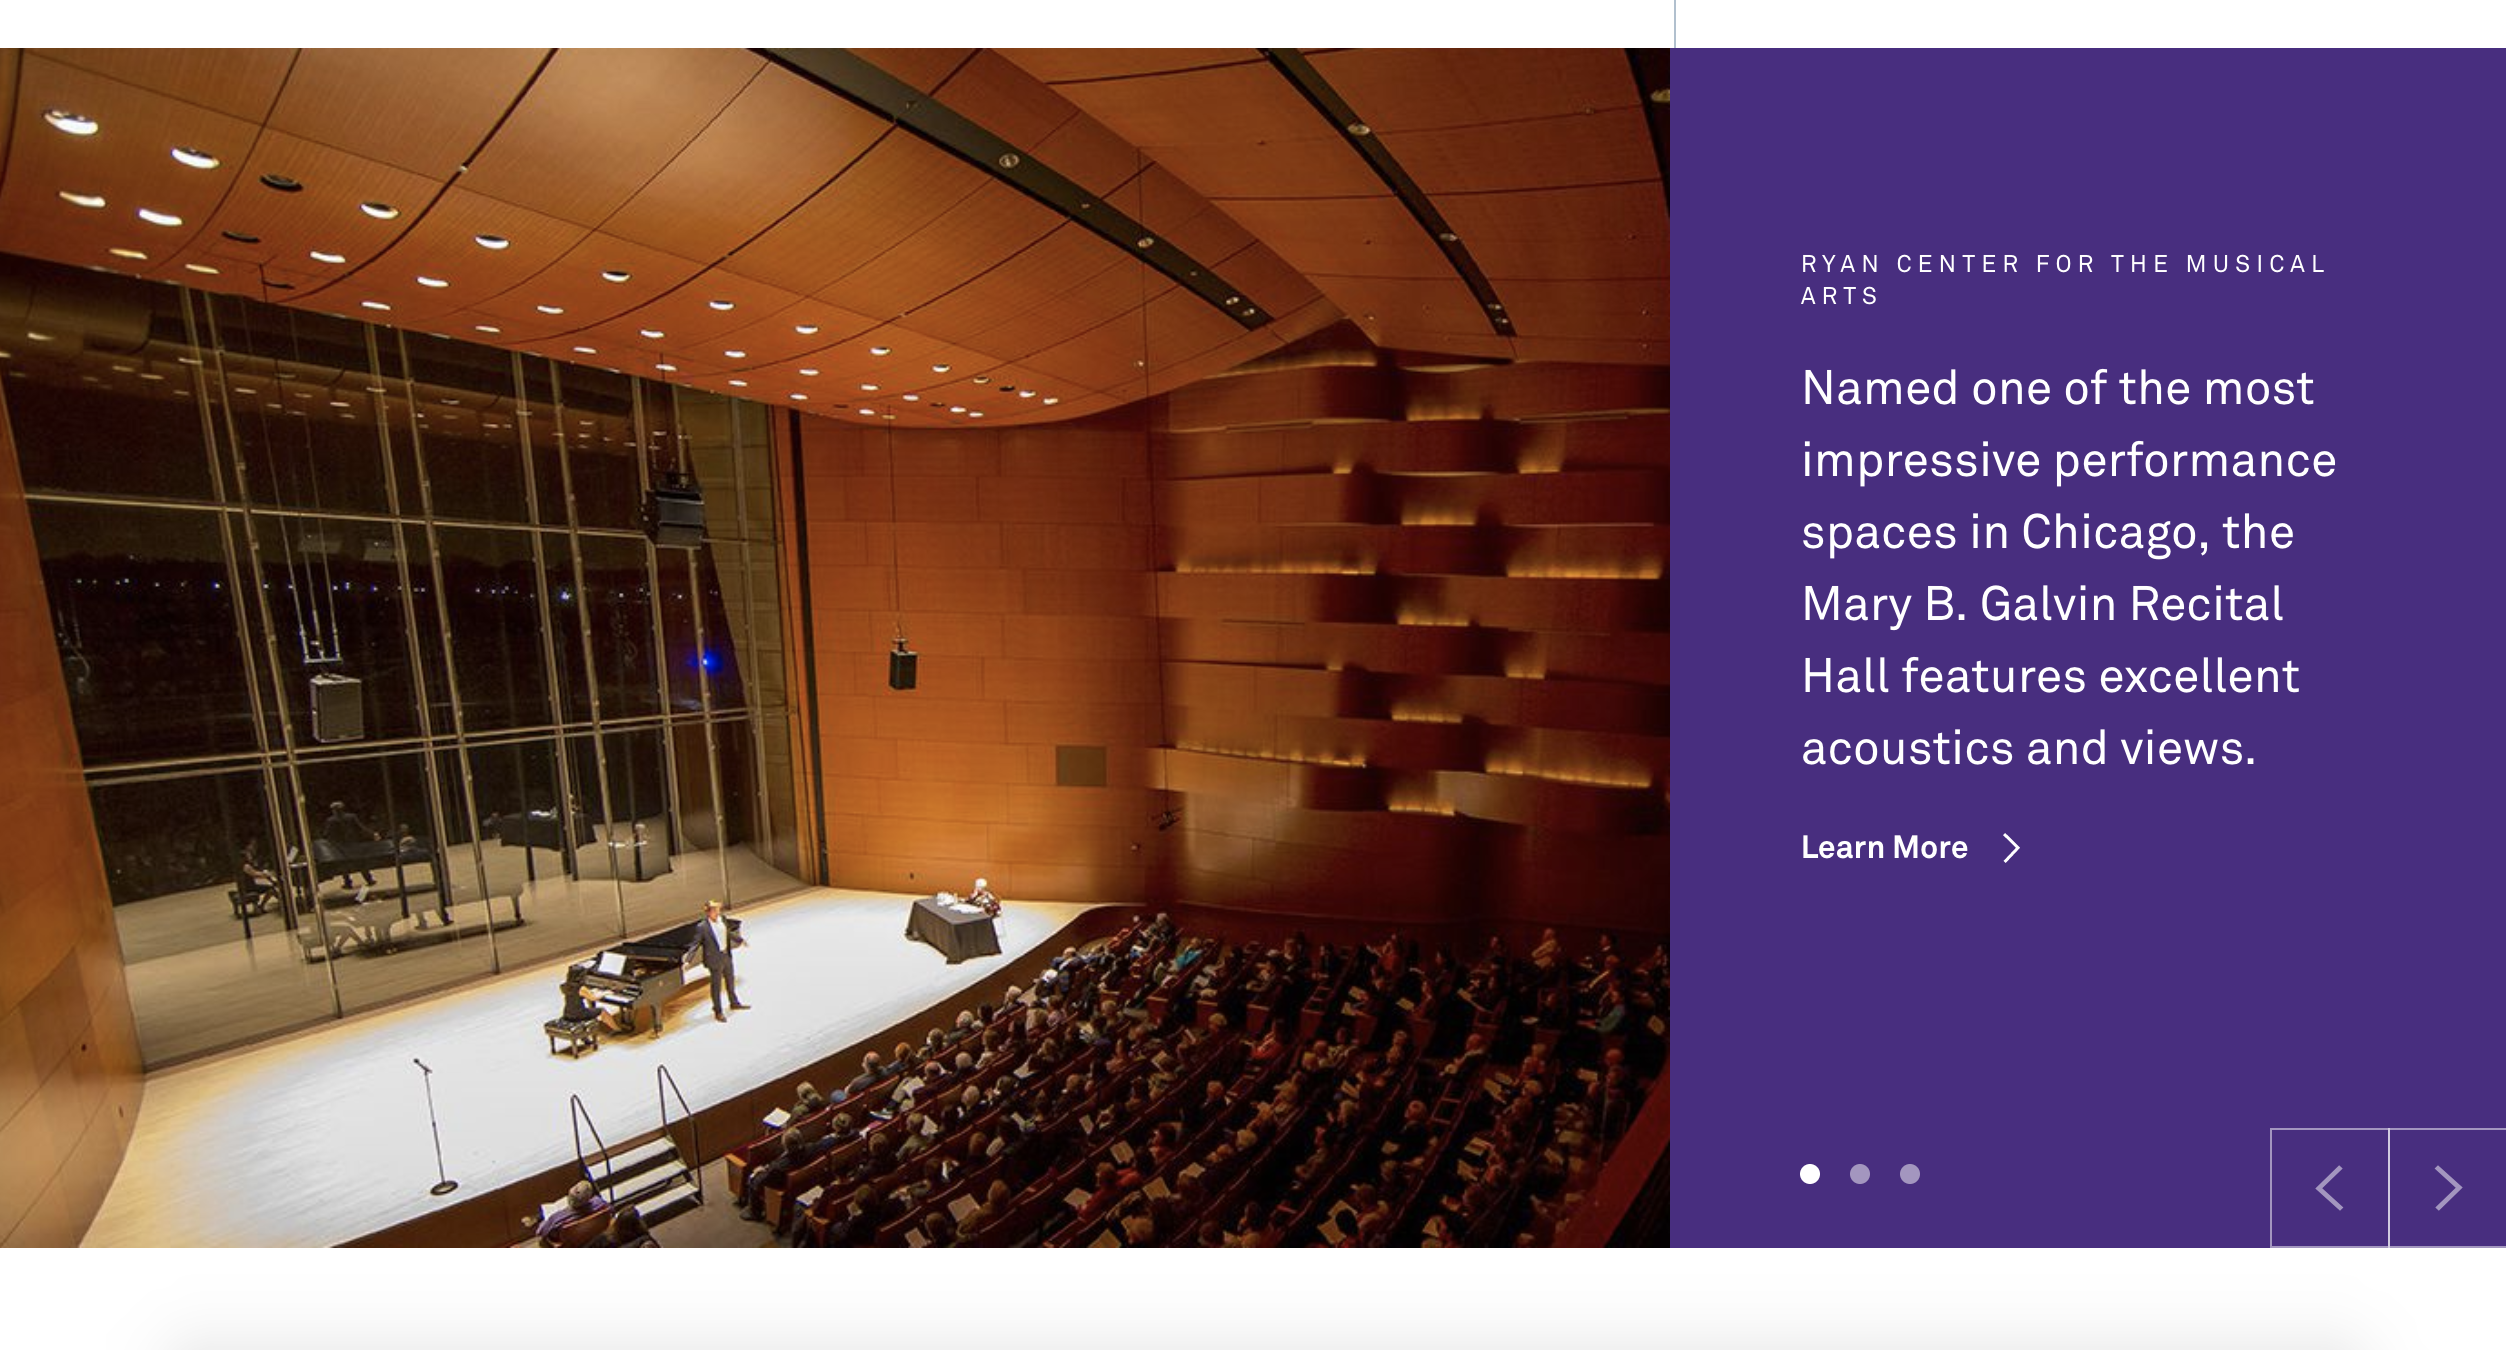 Homepage slider section for the Ryan Center for the Musical Arts